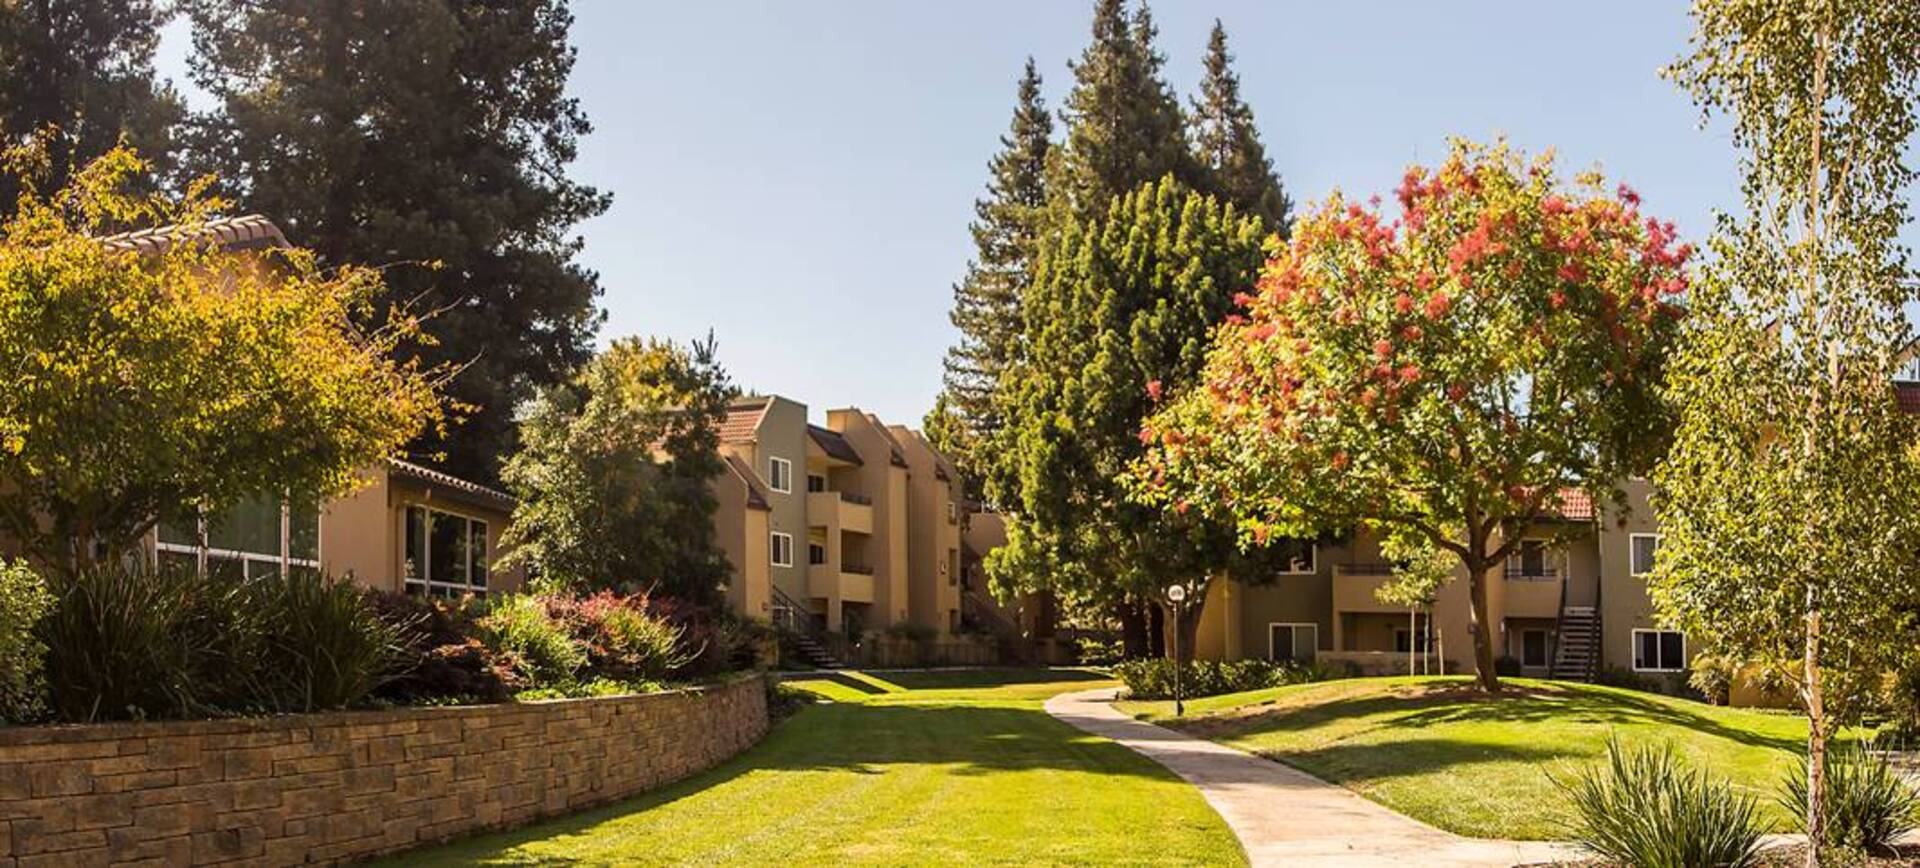 Apartments for Rent in Sunnyvale, CA   The Meadows - Home